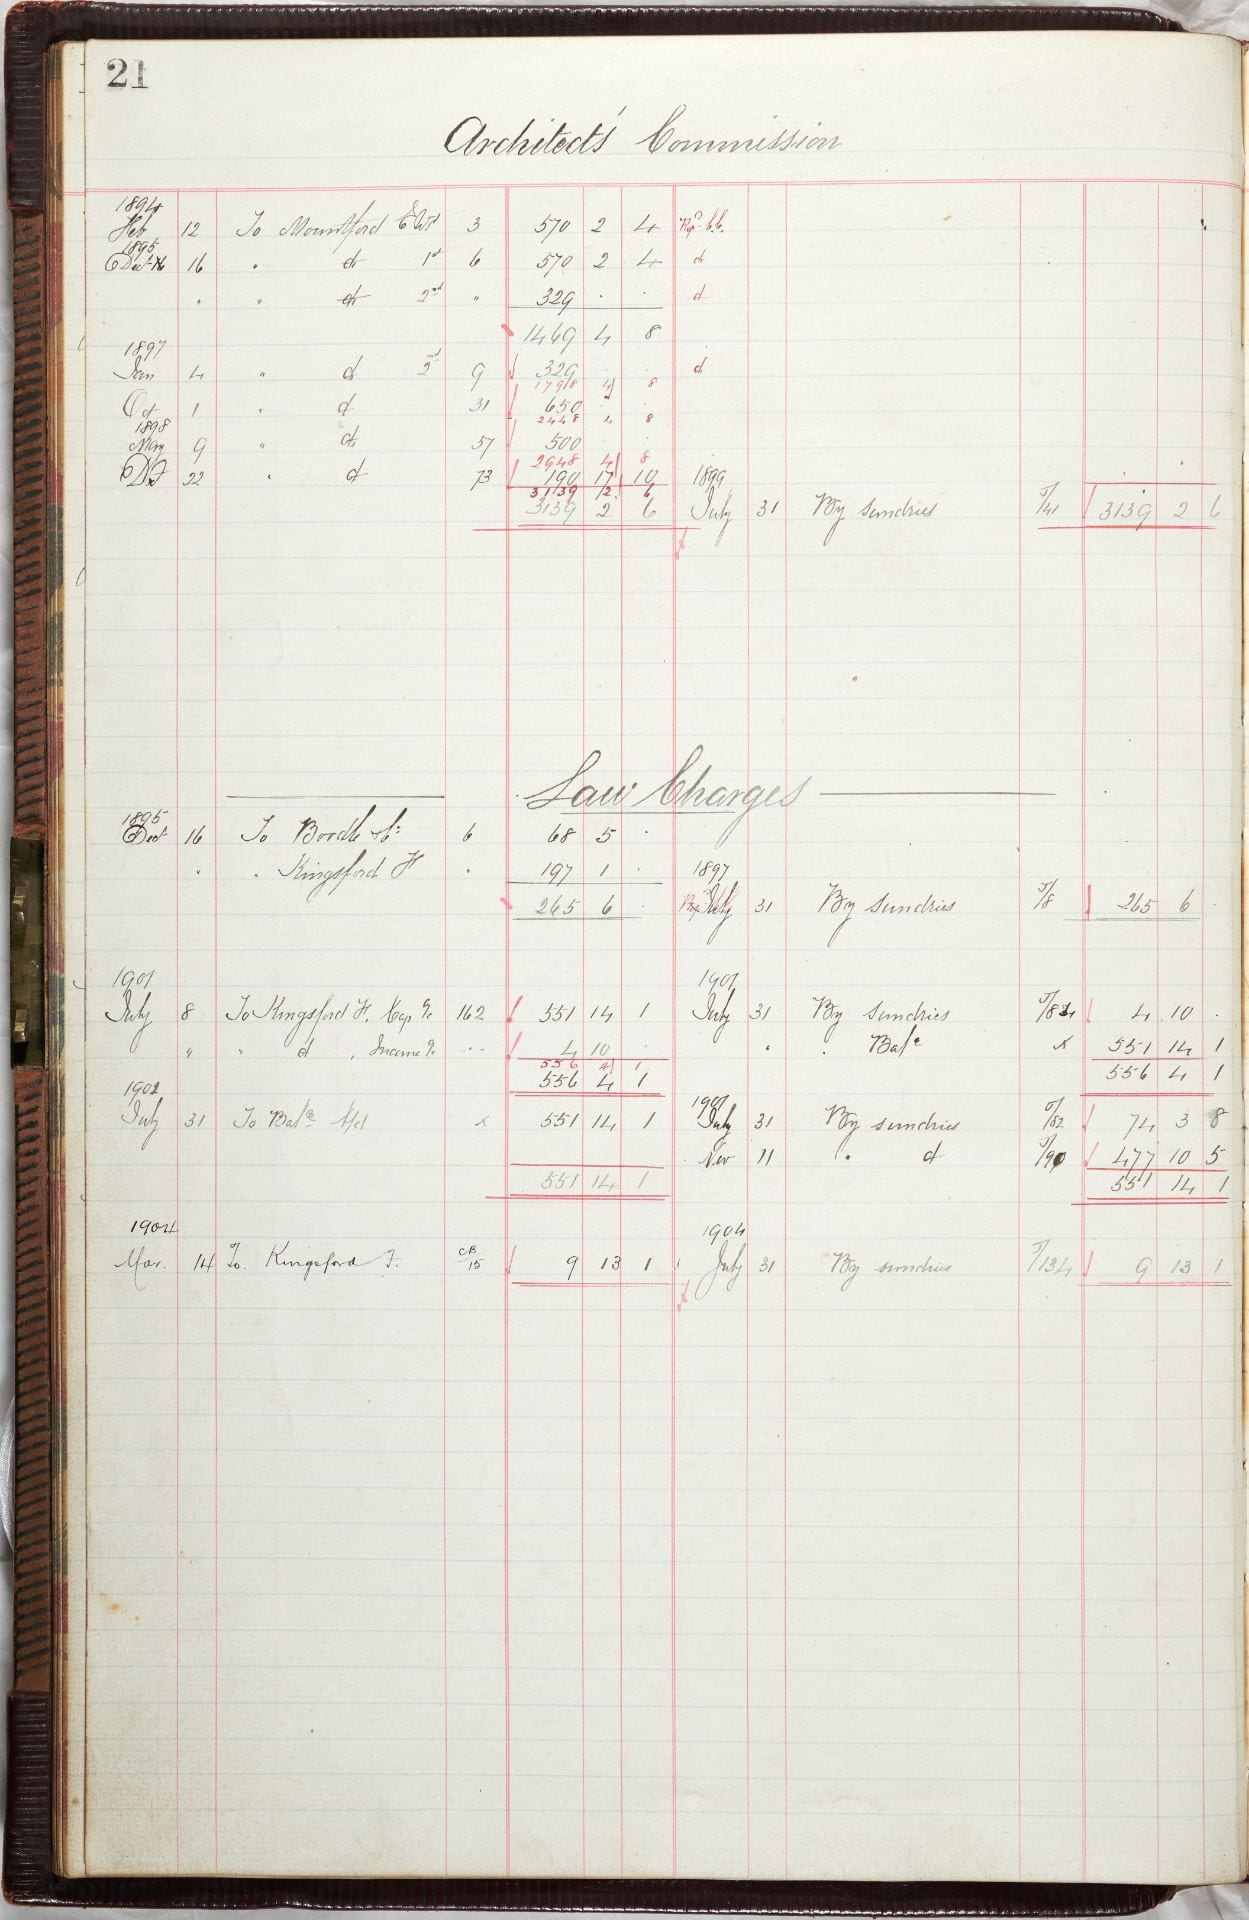 "Financial ledger page 21 Architect's Commission. Costs arising dated from 1894. A sub-section from 1895 is headed ""Law Charges."""